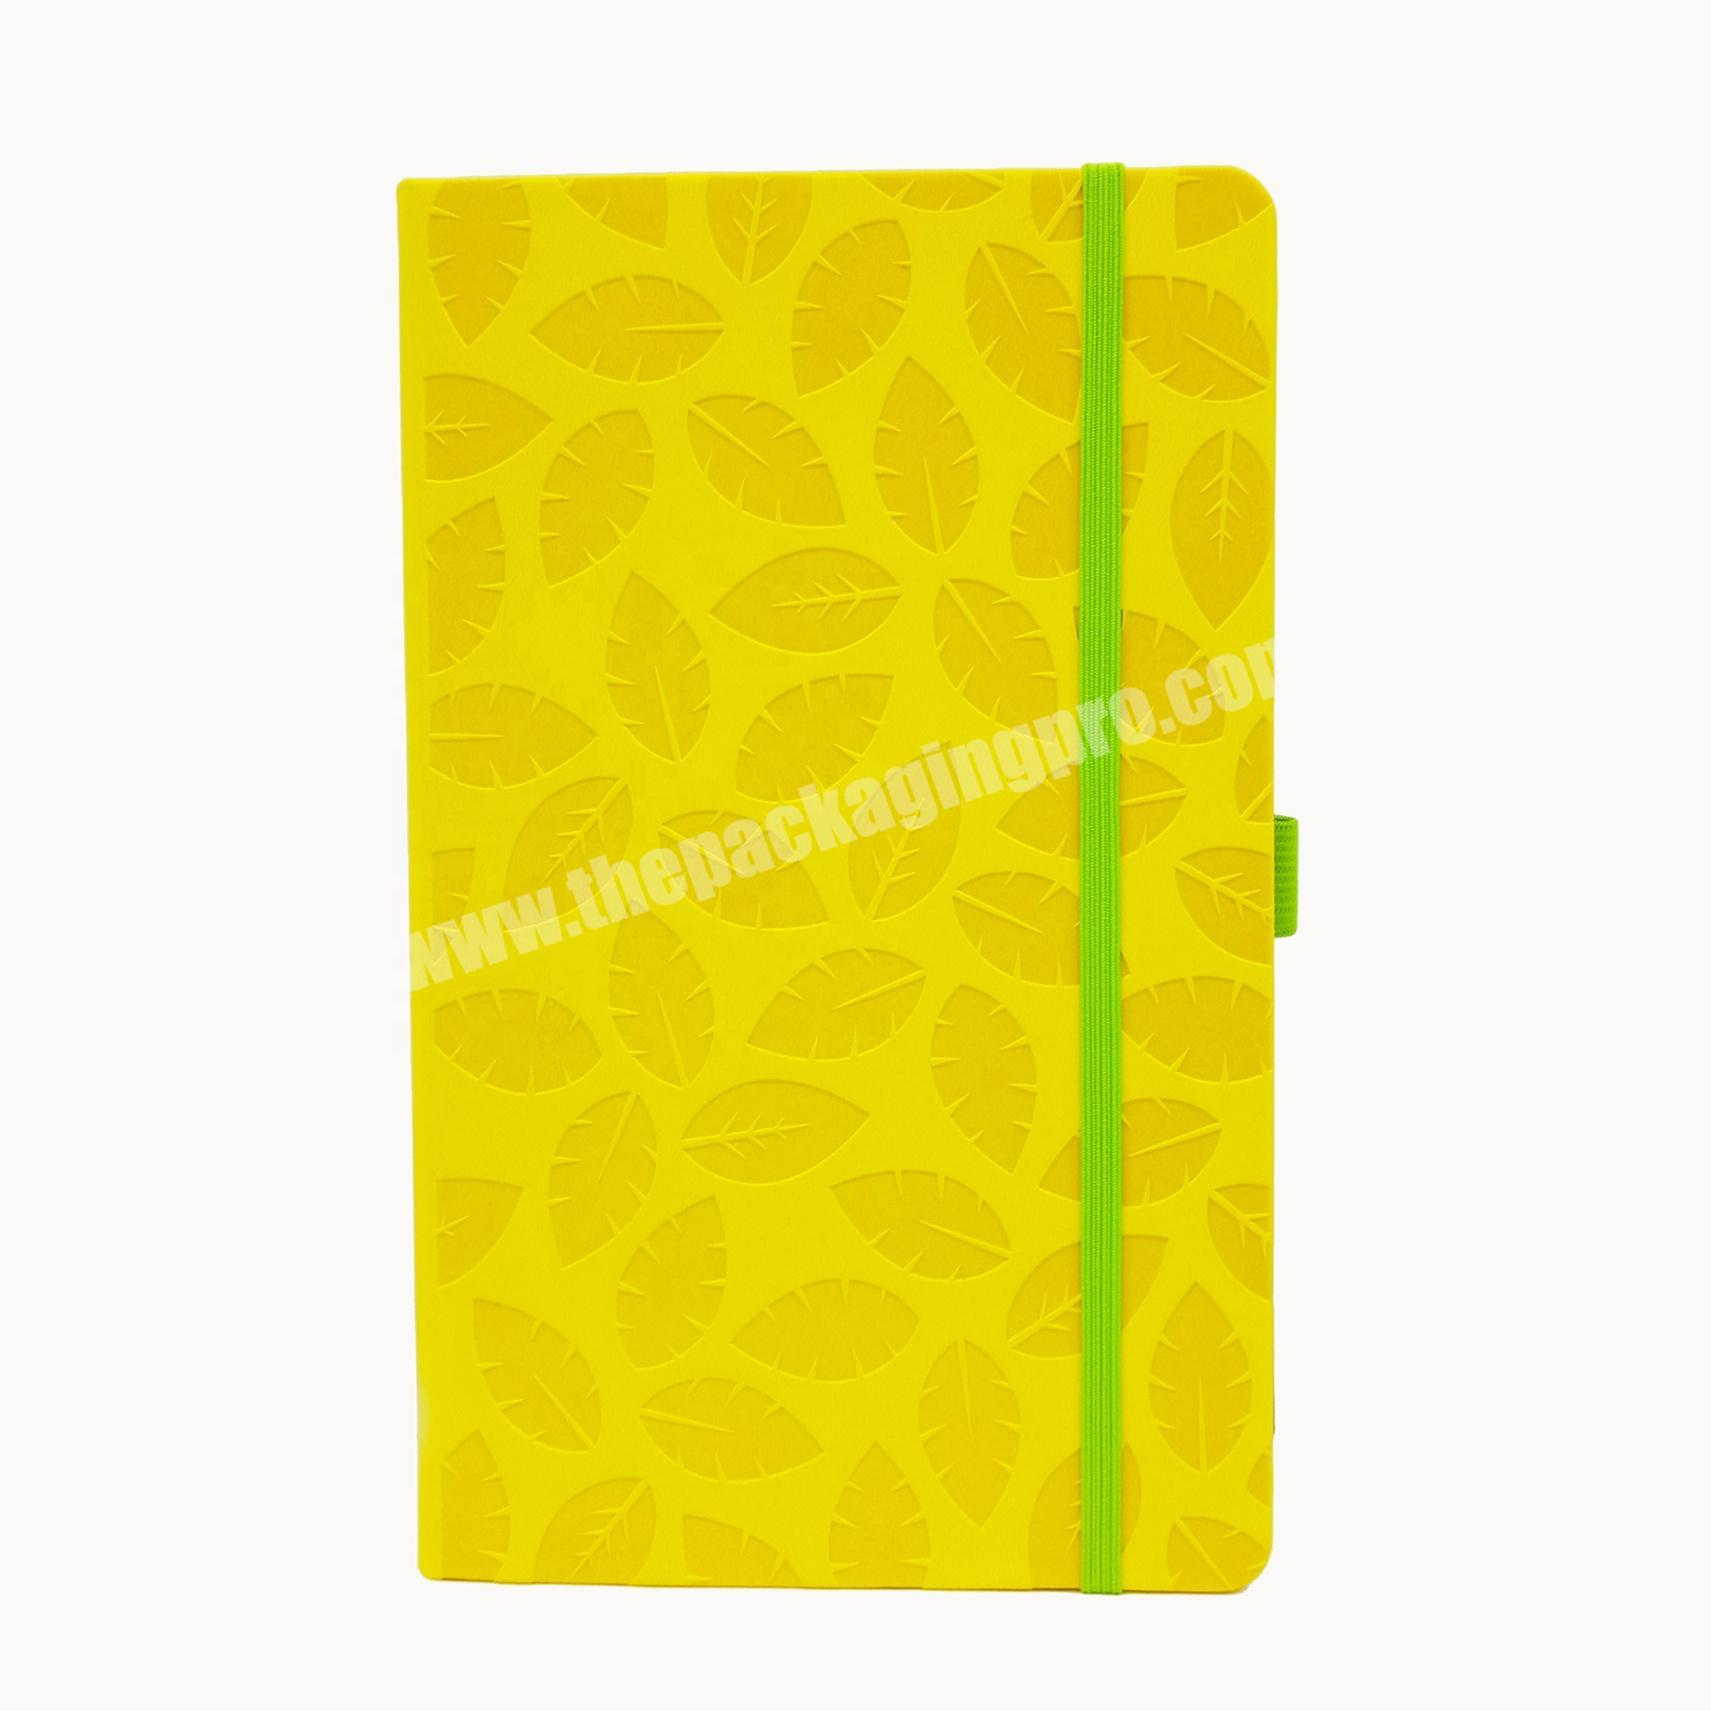 High quality pu leather notebook school diary for student organizer planner